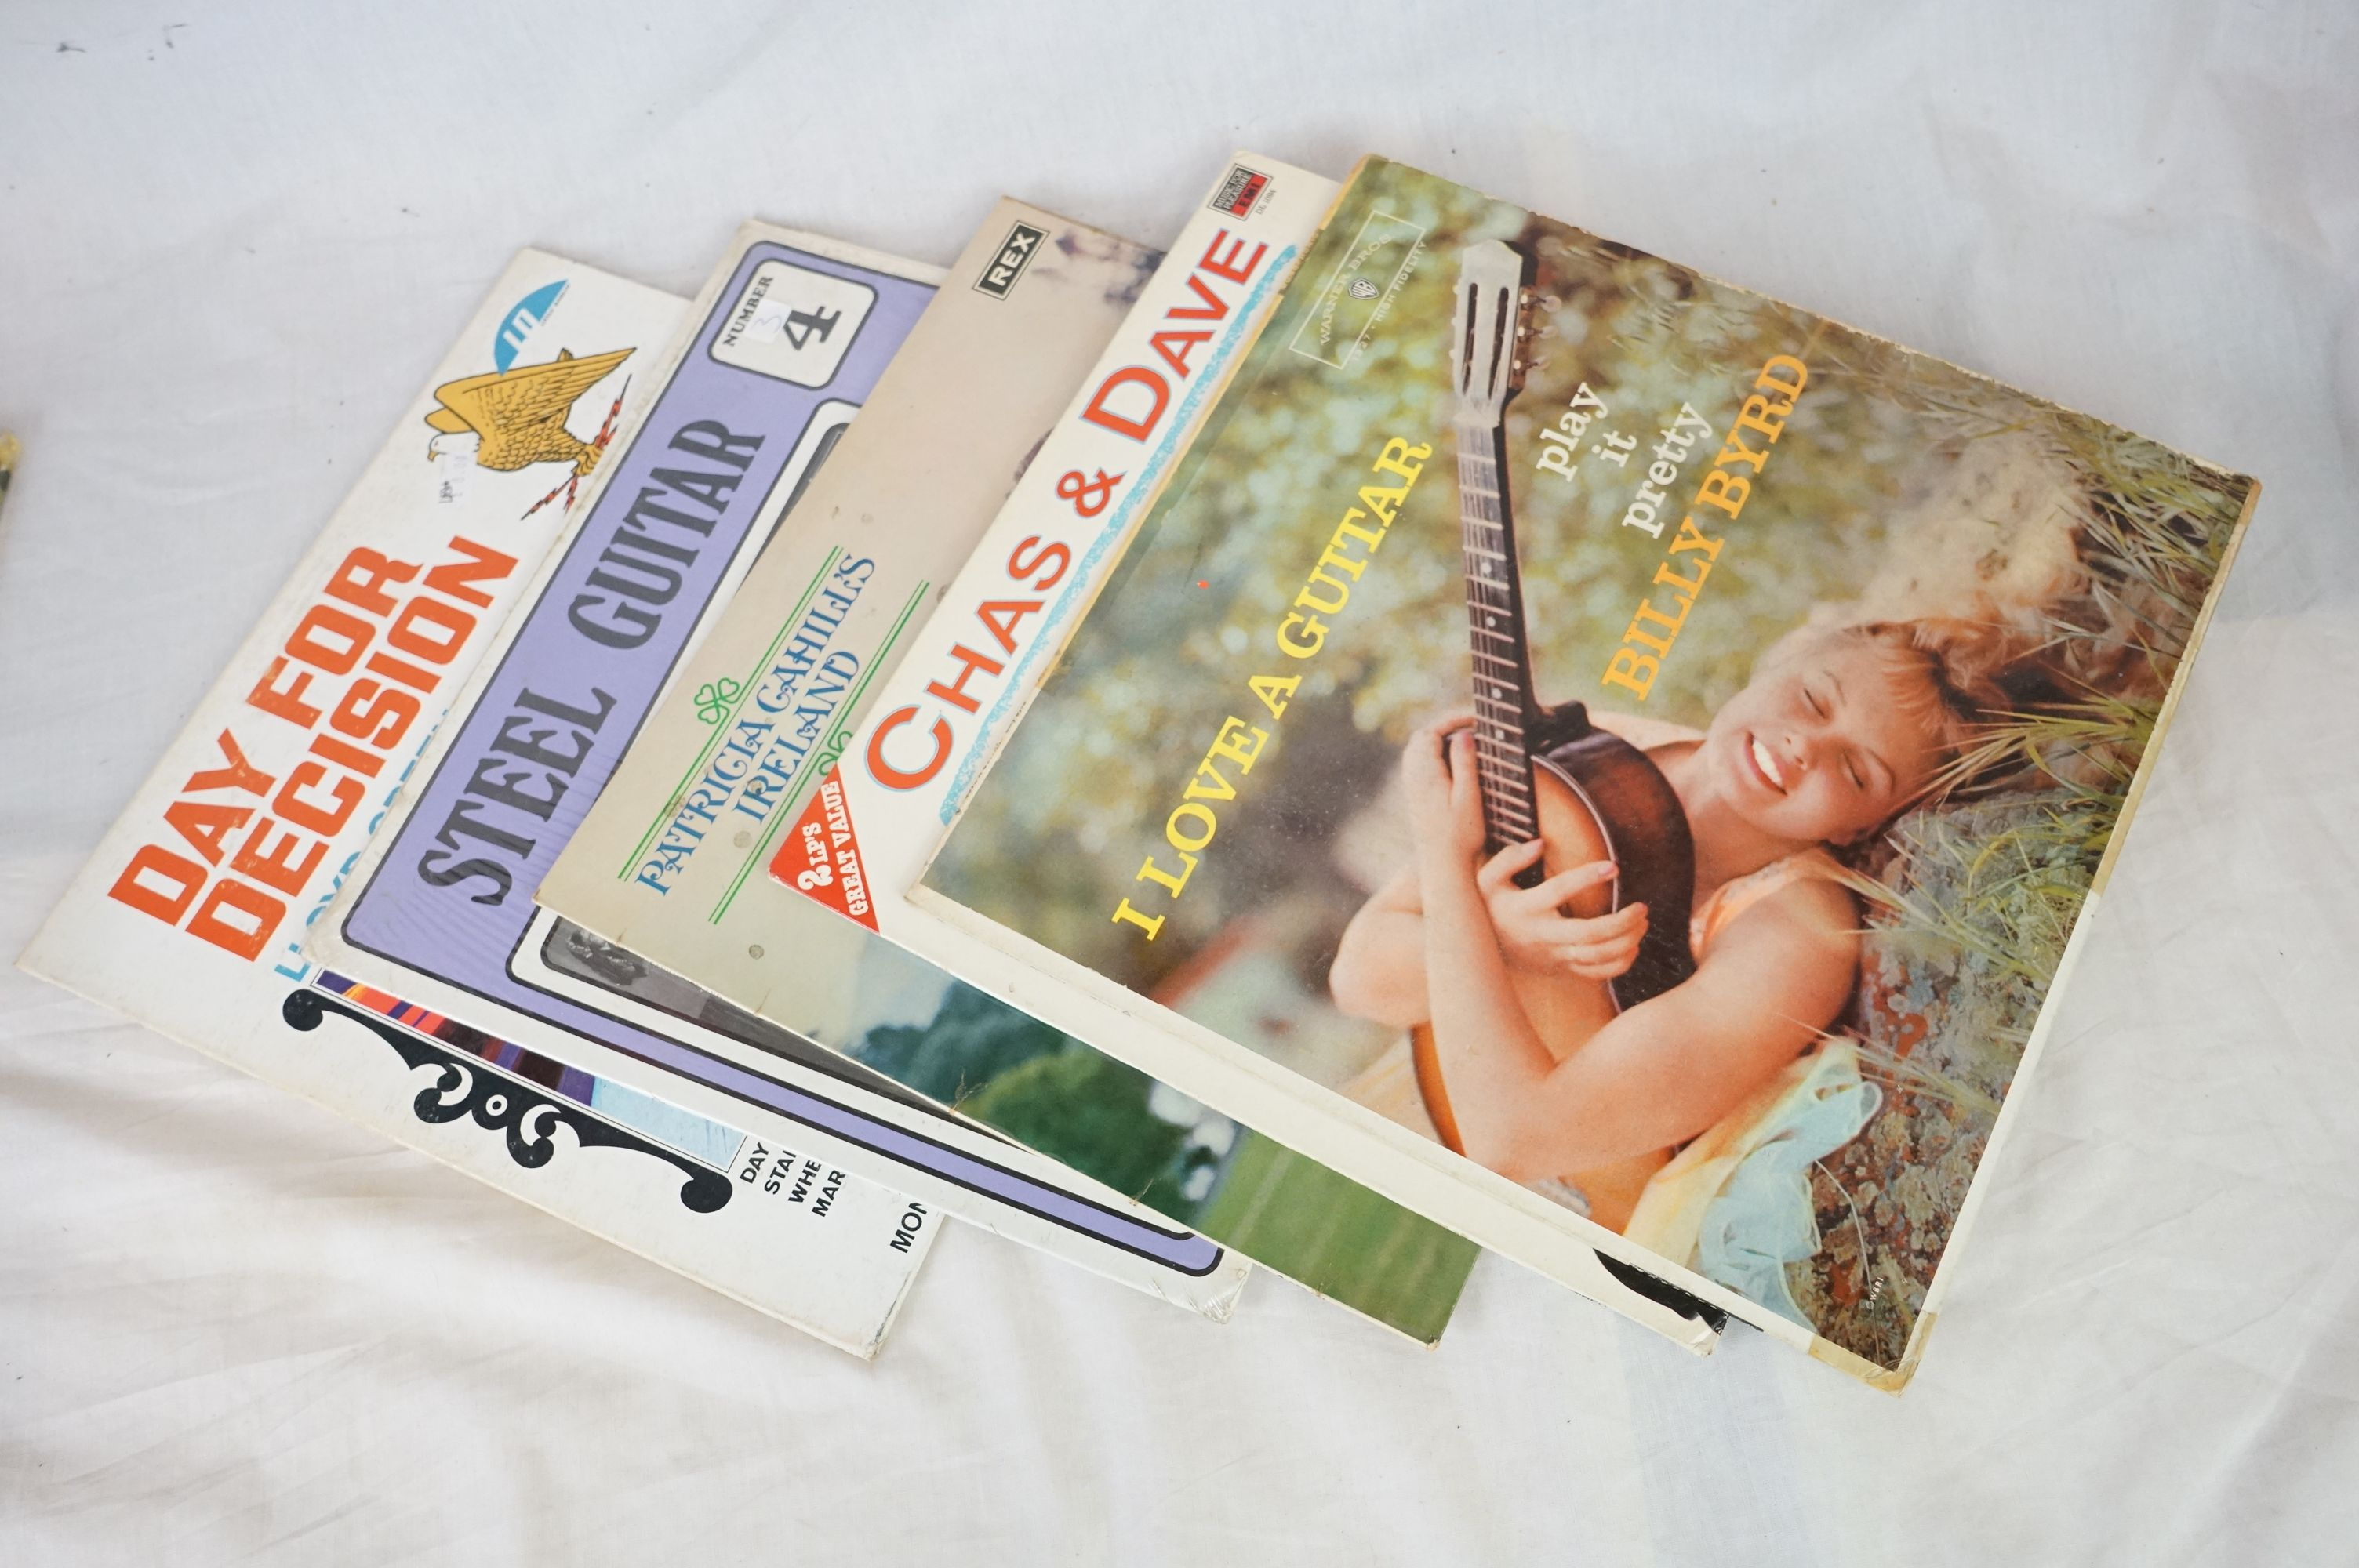 Vinyl - Over 300 LPs to include Country, MOR etc, sleeves and vinyl vg+ (three boxes) - Image 3 of 4